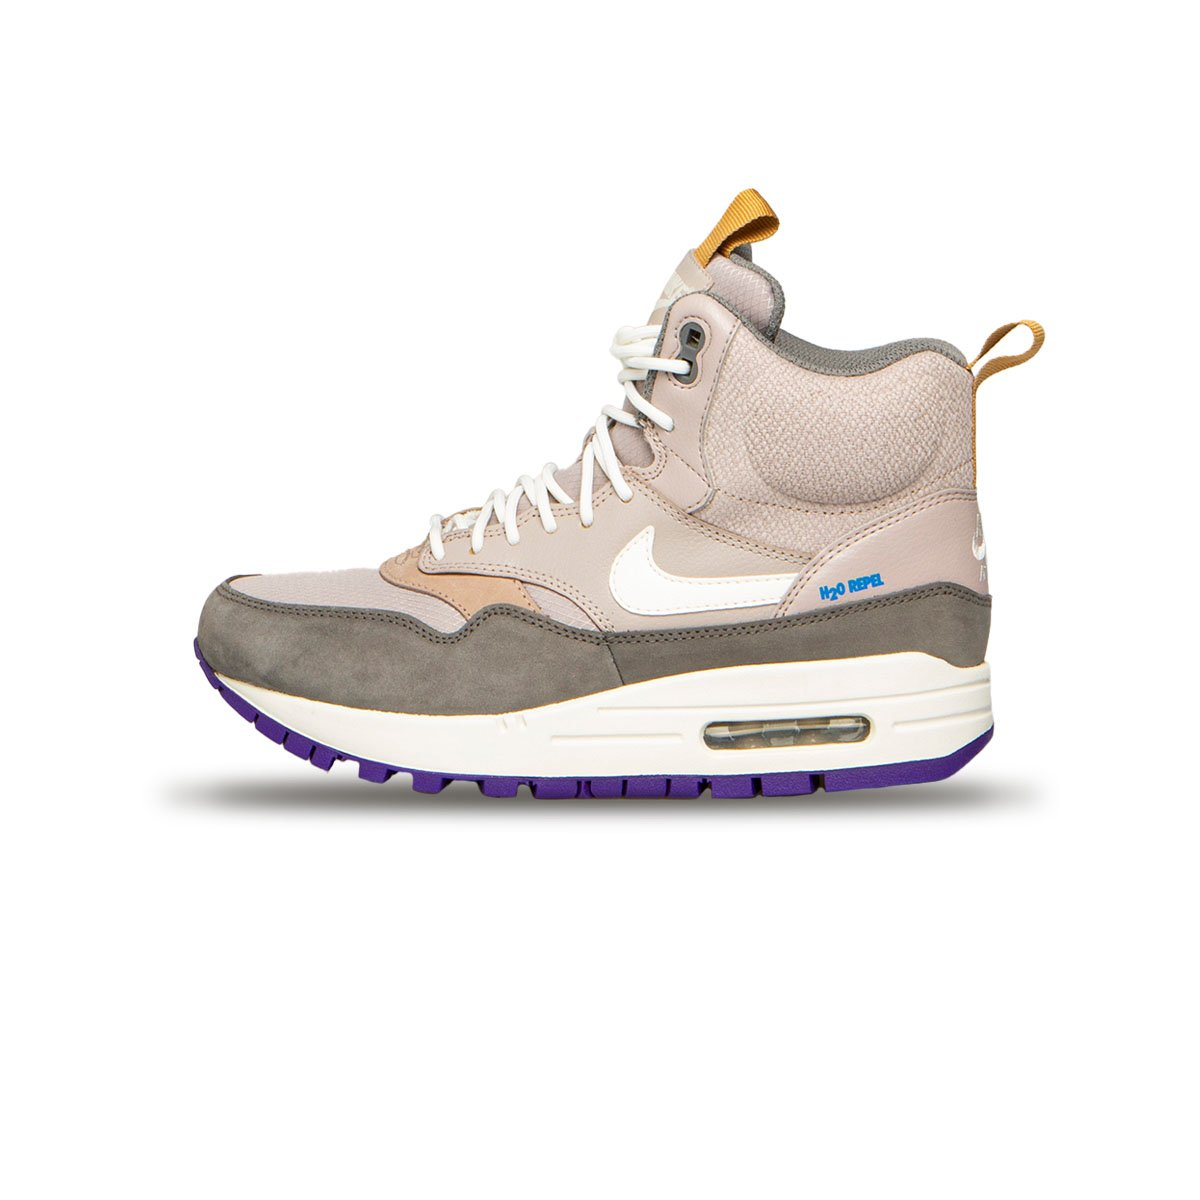 Sneakers Nike WMNS Air Max 1 white midnight navy (319986 116)